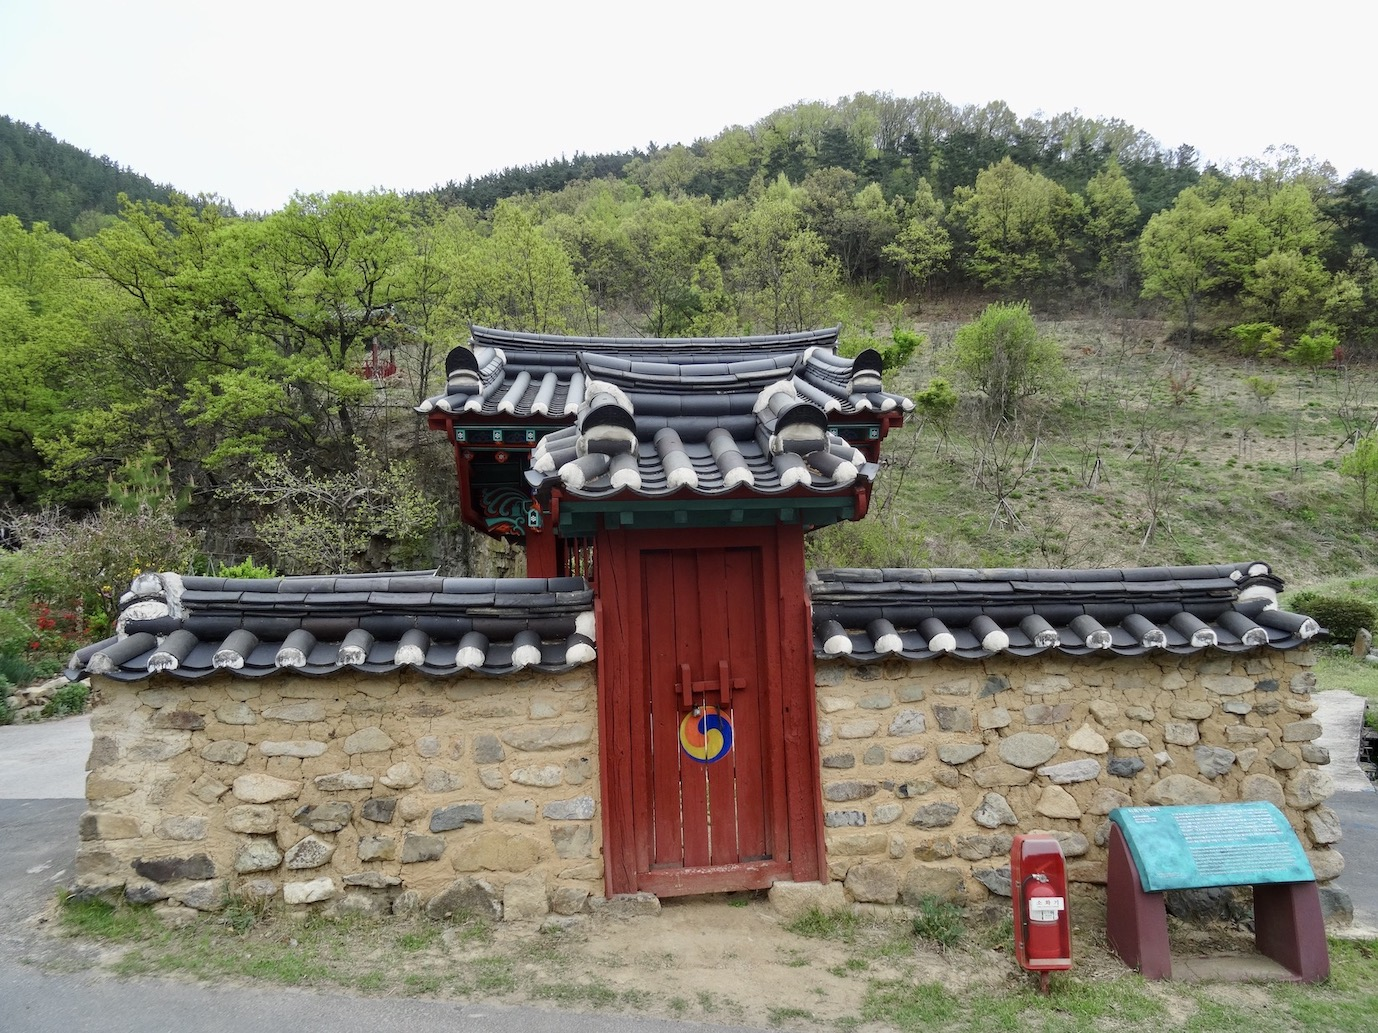 Otgol Village South Korea.